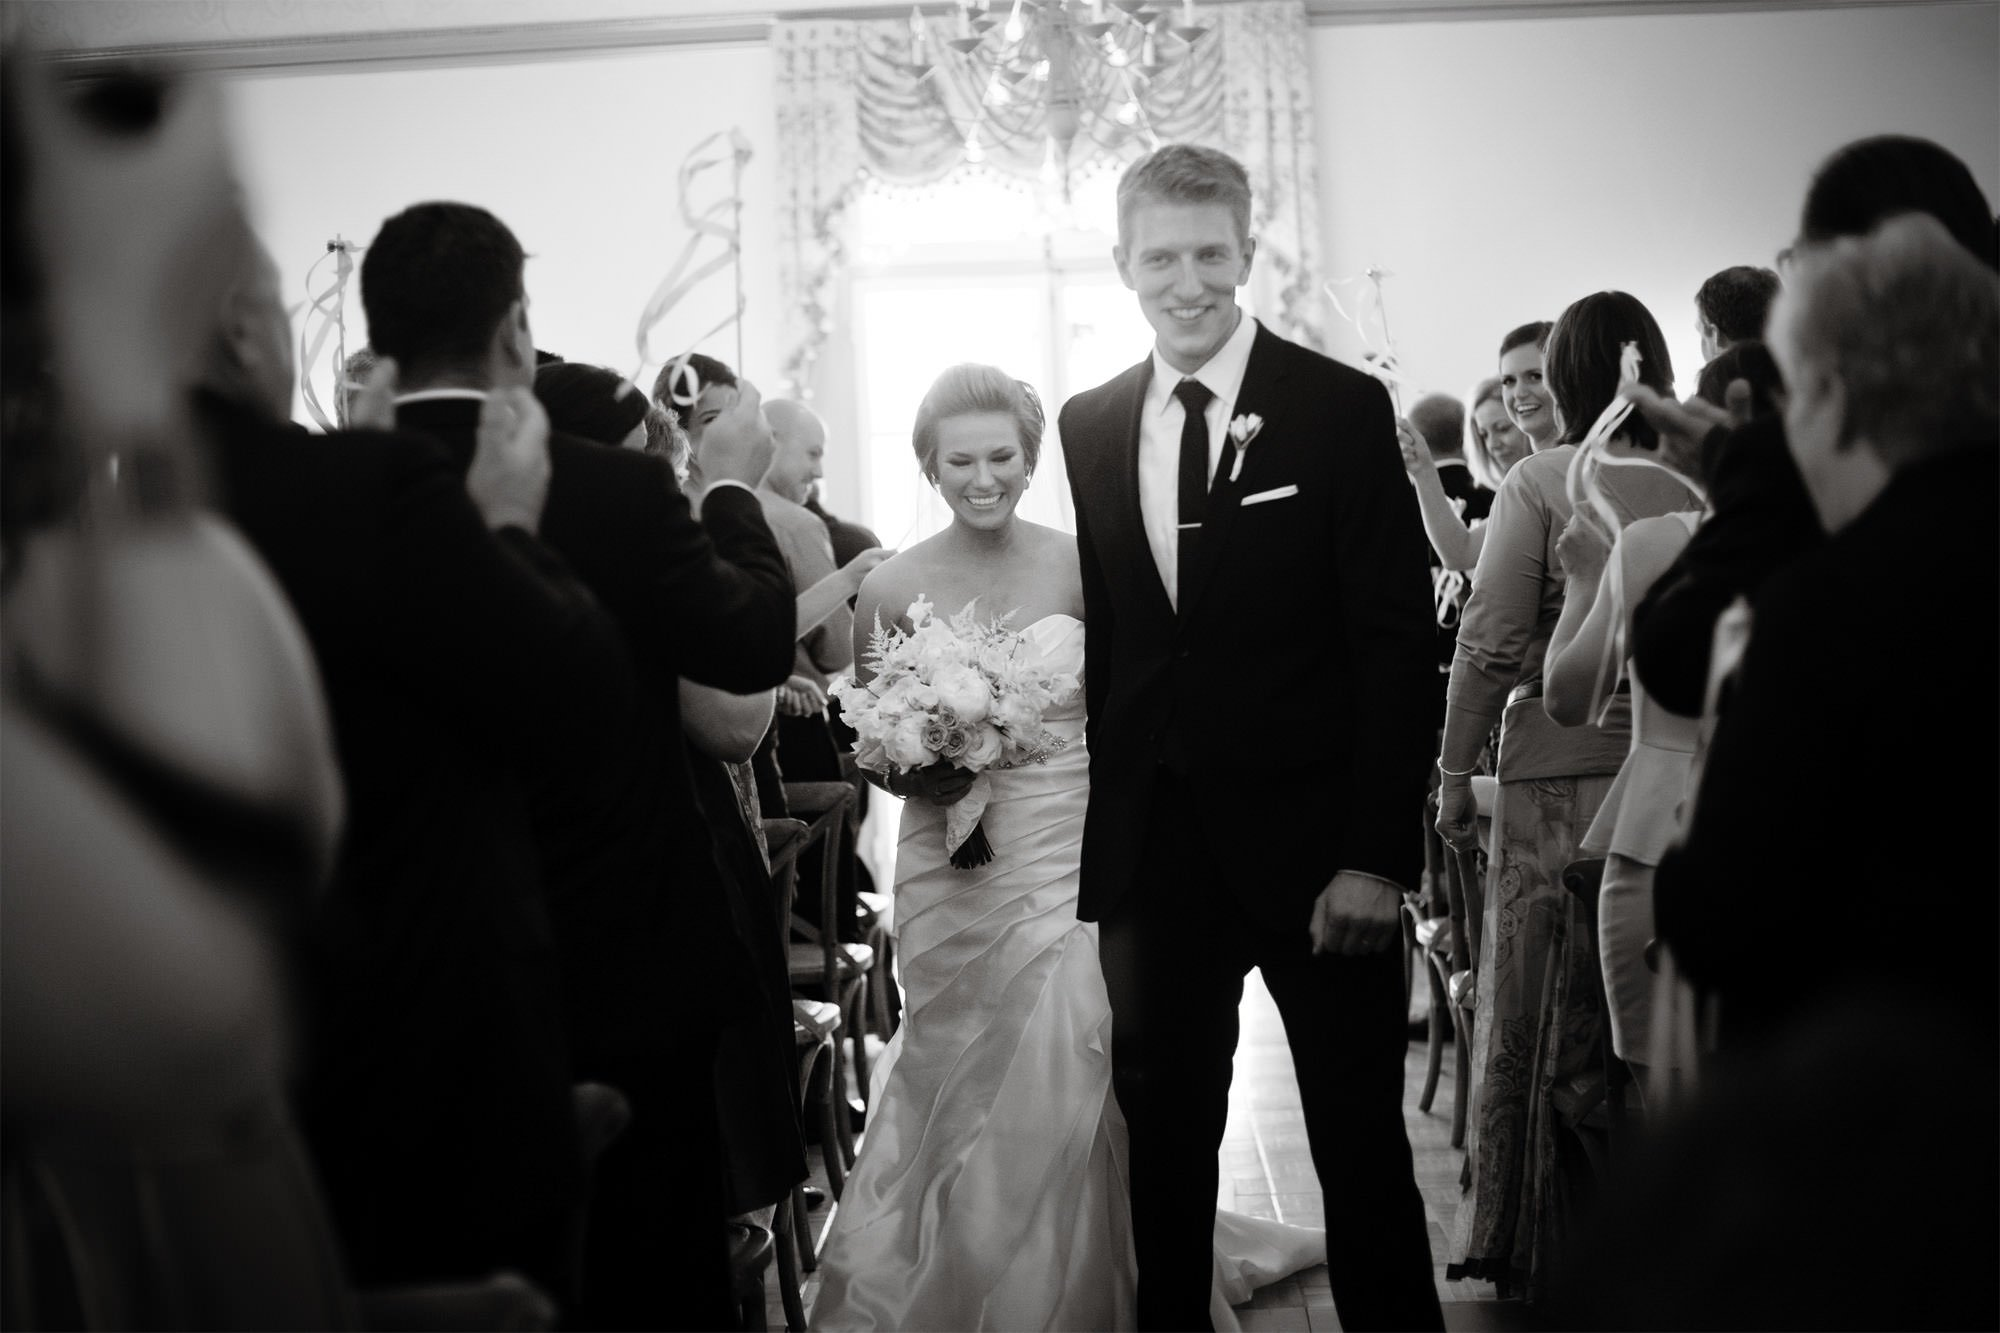 The bride and groom walk down the aisle together following their wedding ceremony at Oxon Hill Manor.